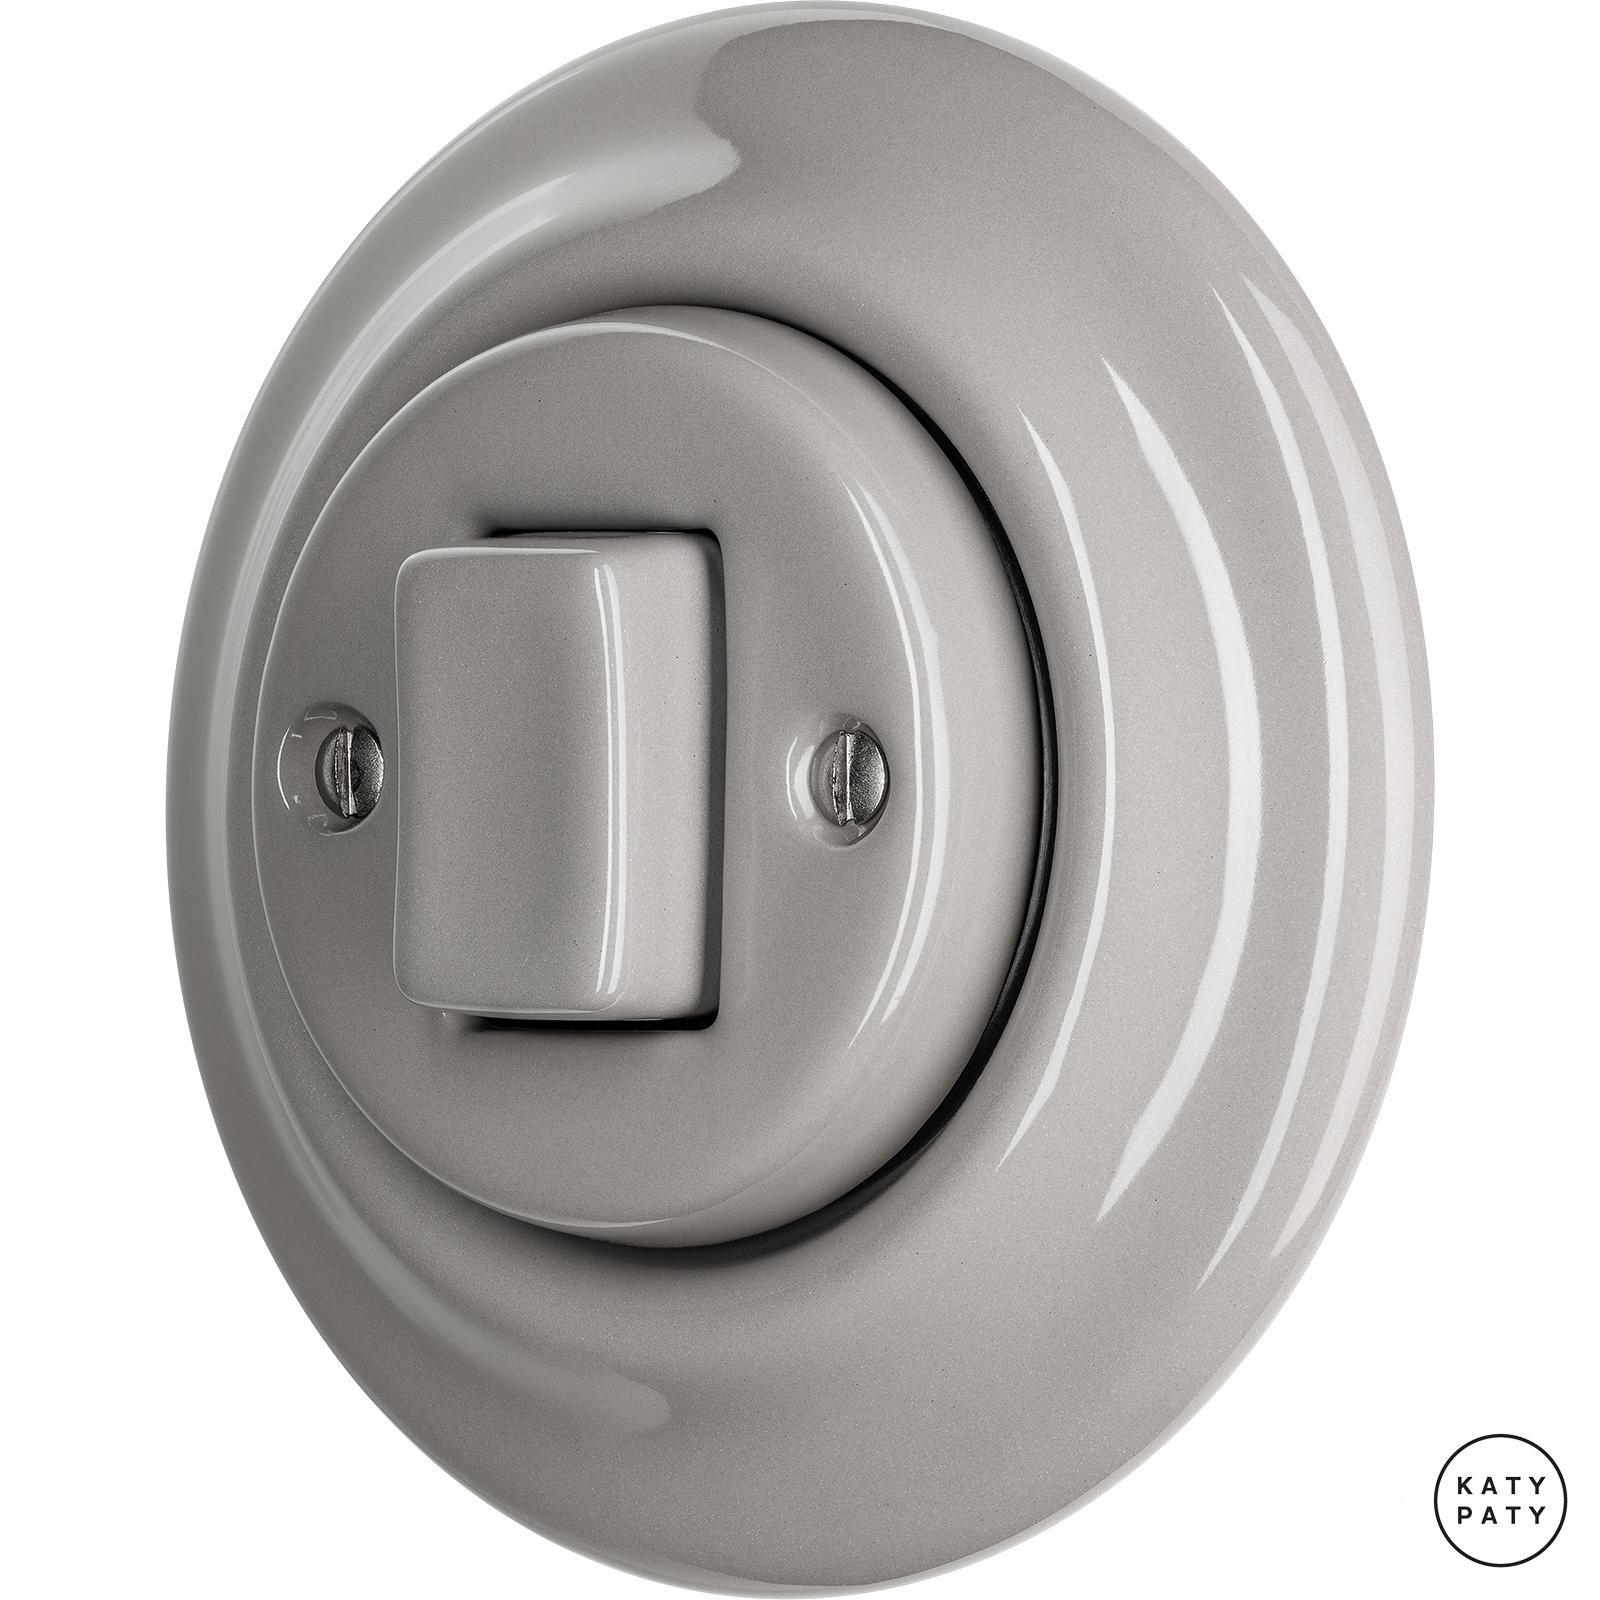 Porcelain switches - 1 key - FAT ()  - LUCIDUM | Katy Paty